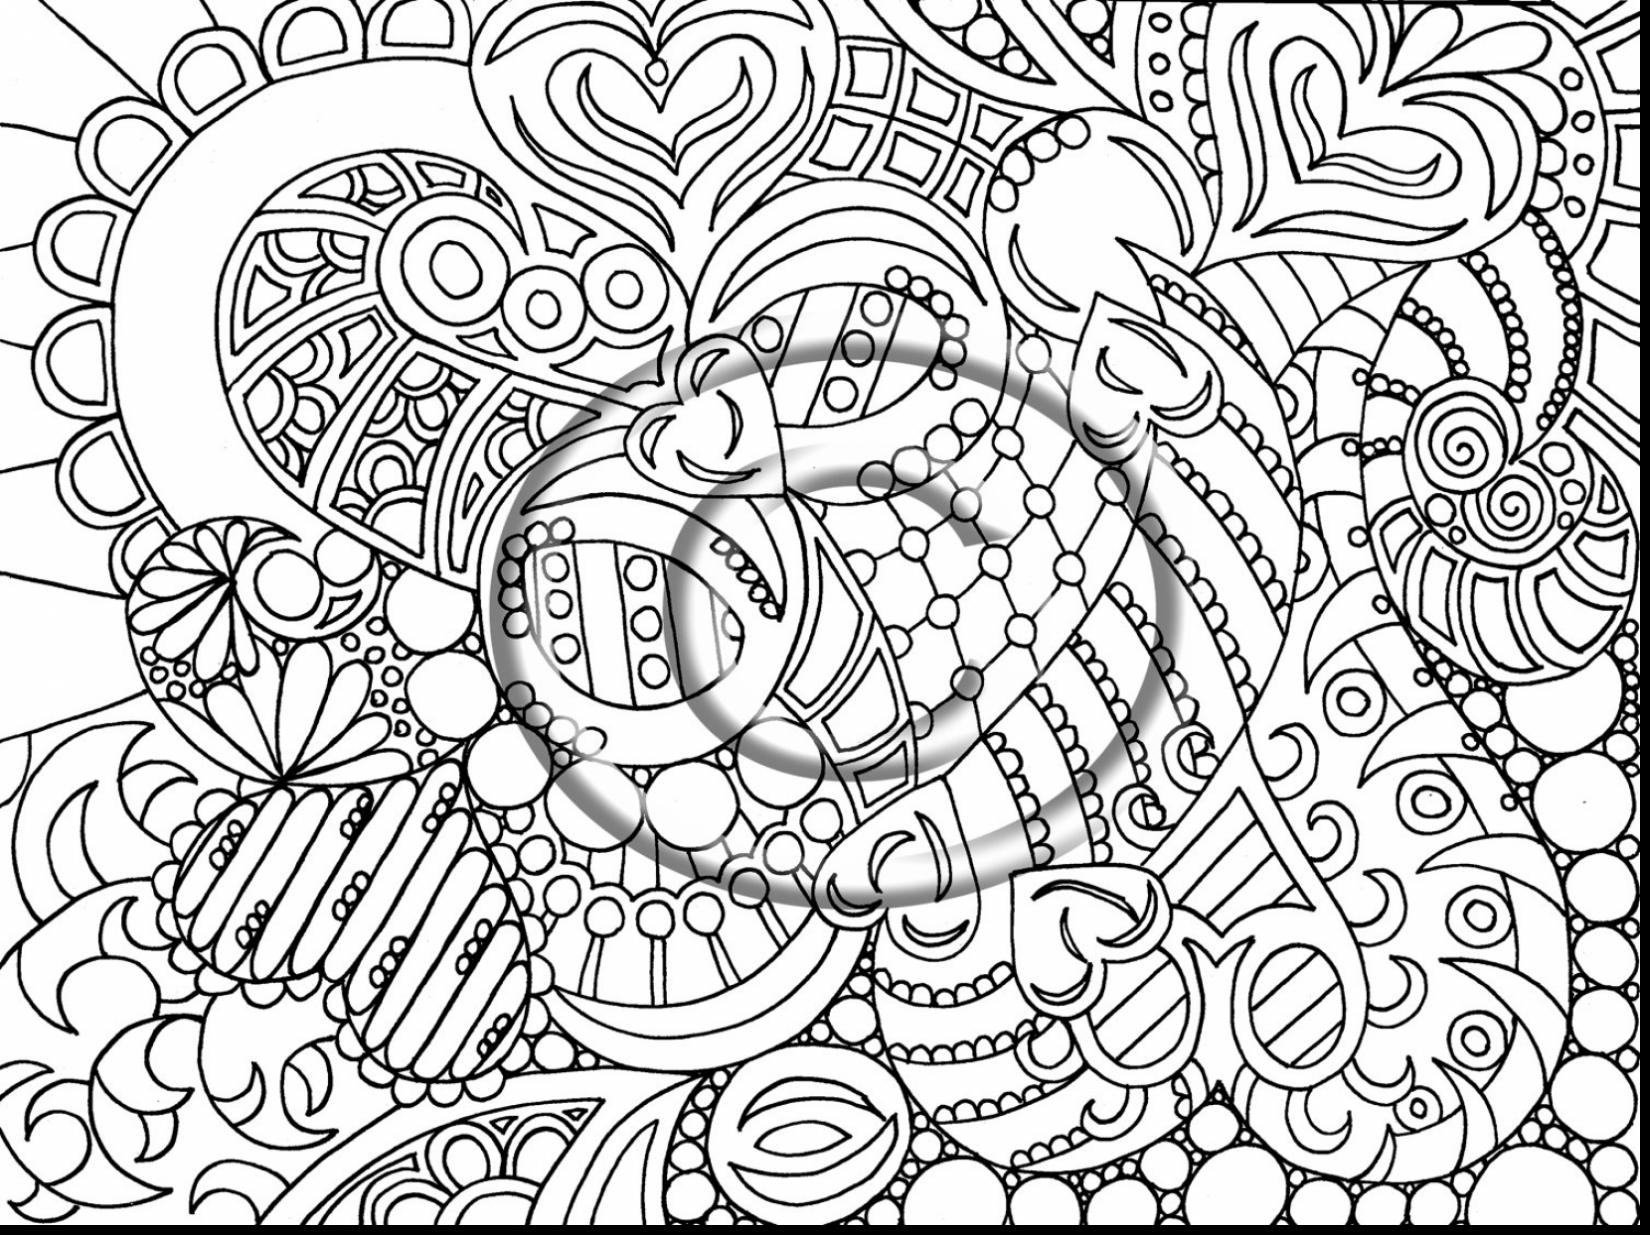 Trippy Sun Drawing at GetDrawings.com | Free for personal use Trippy ...